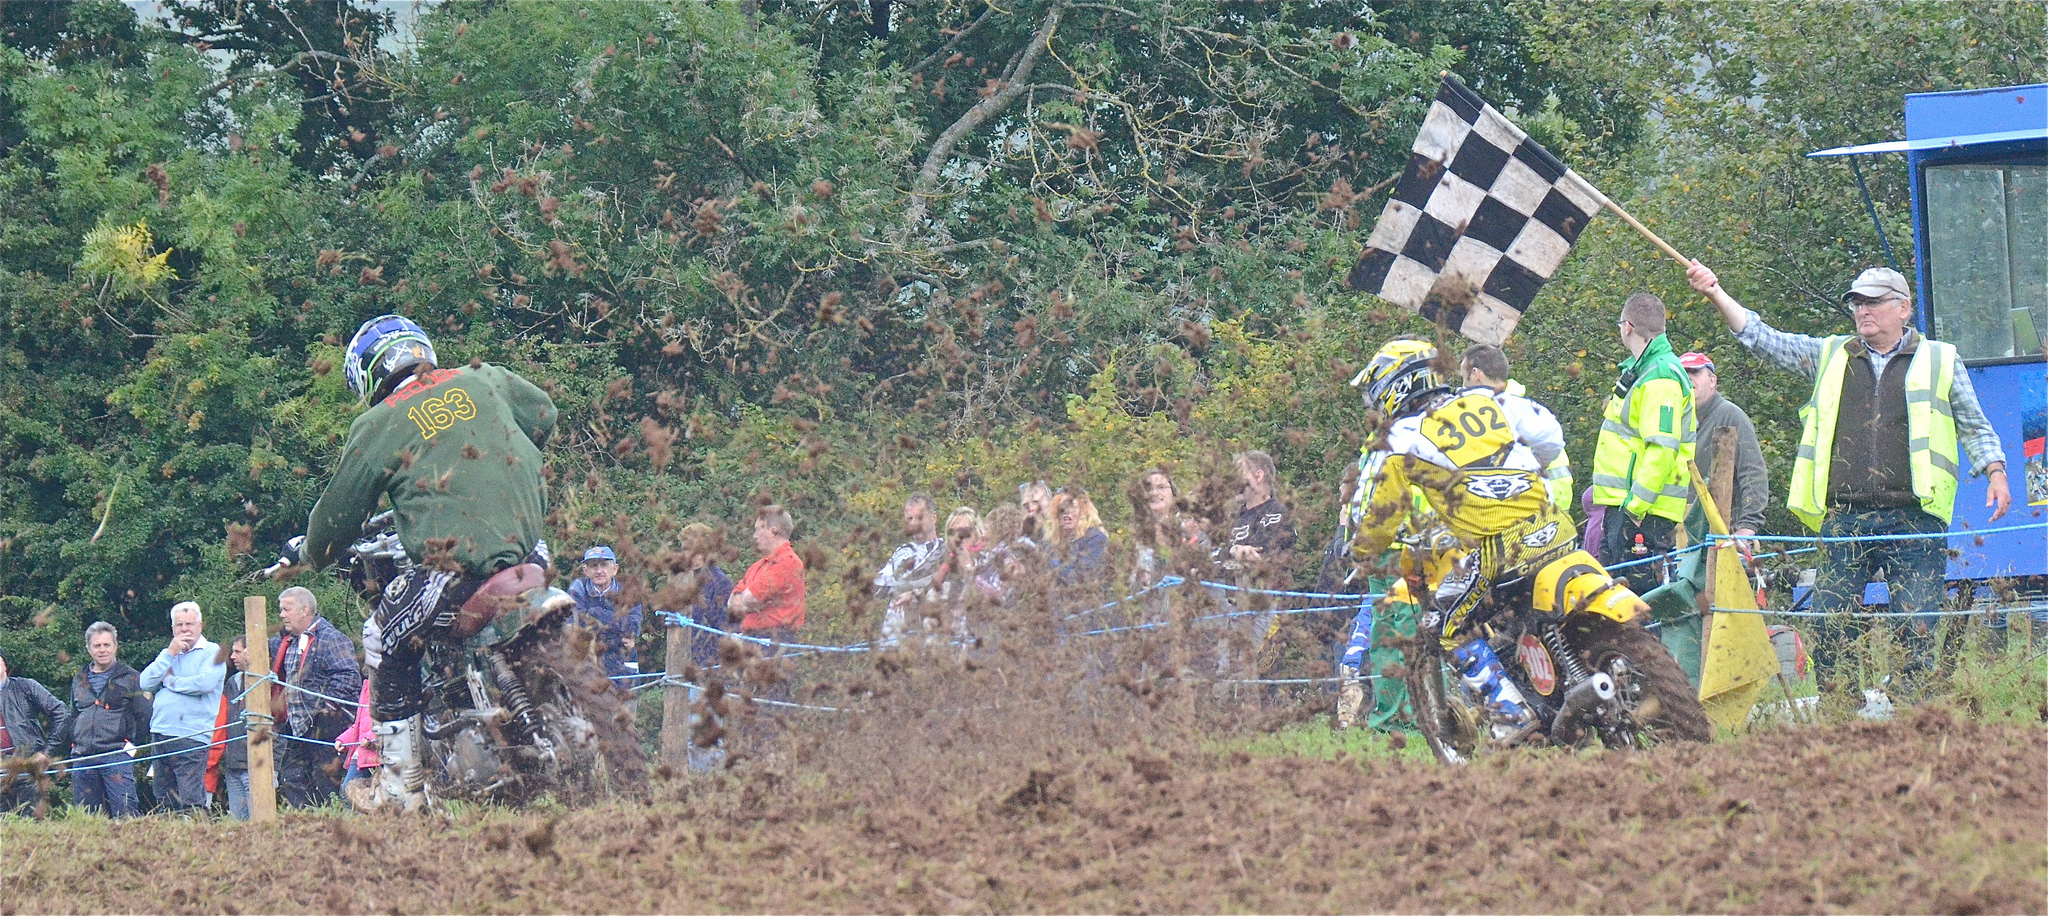 Llanthony Classic Scramble Photos September 2015 classicdirtbikerider.com..20